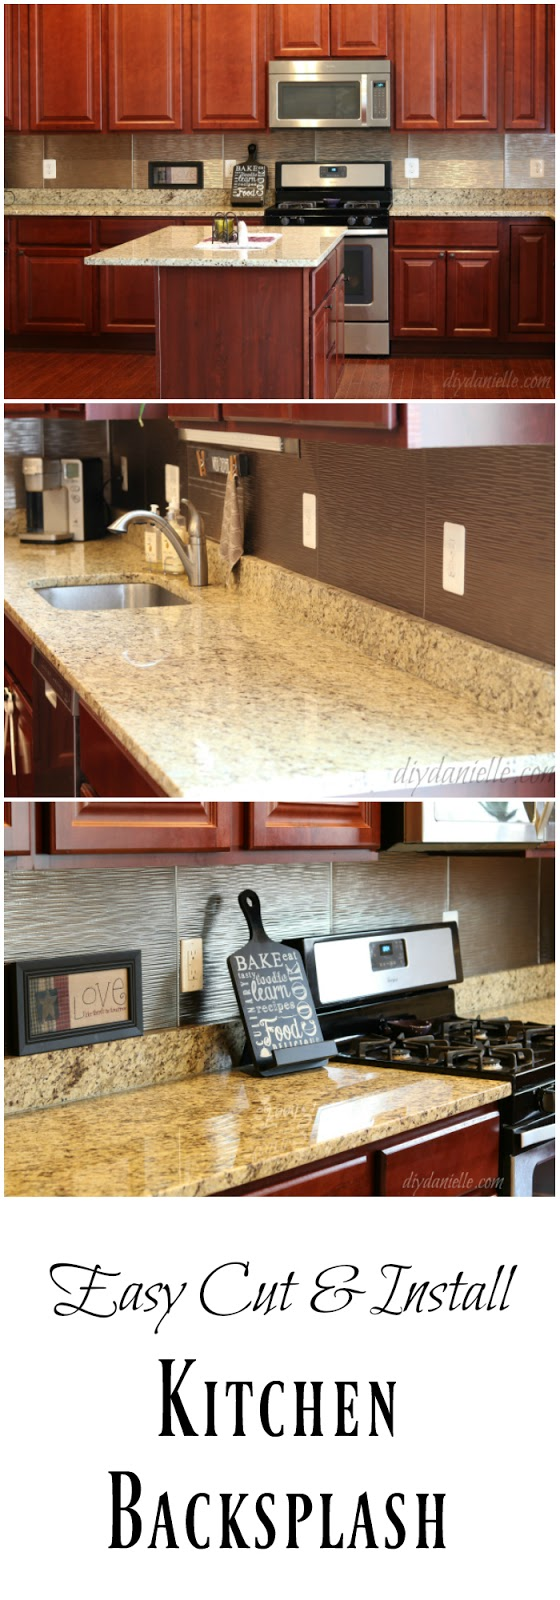 how to install an easy backsplash without a wet saw using thin fasade